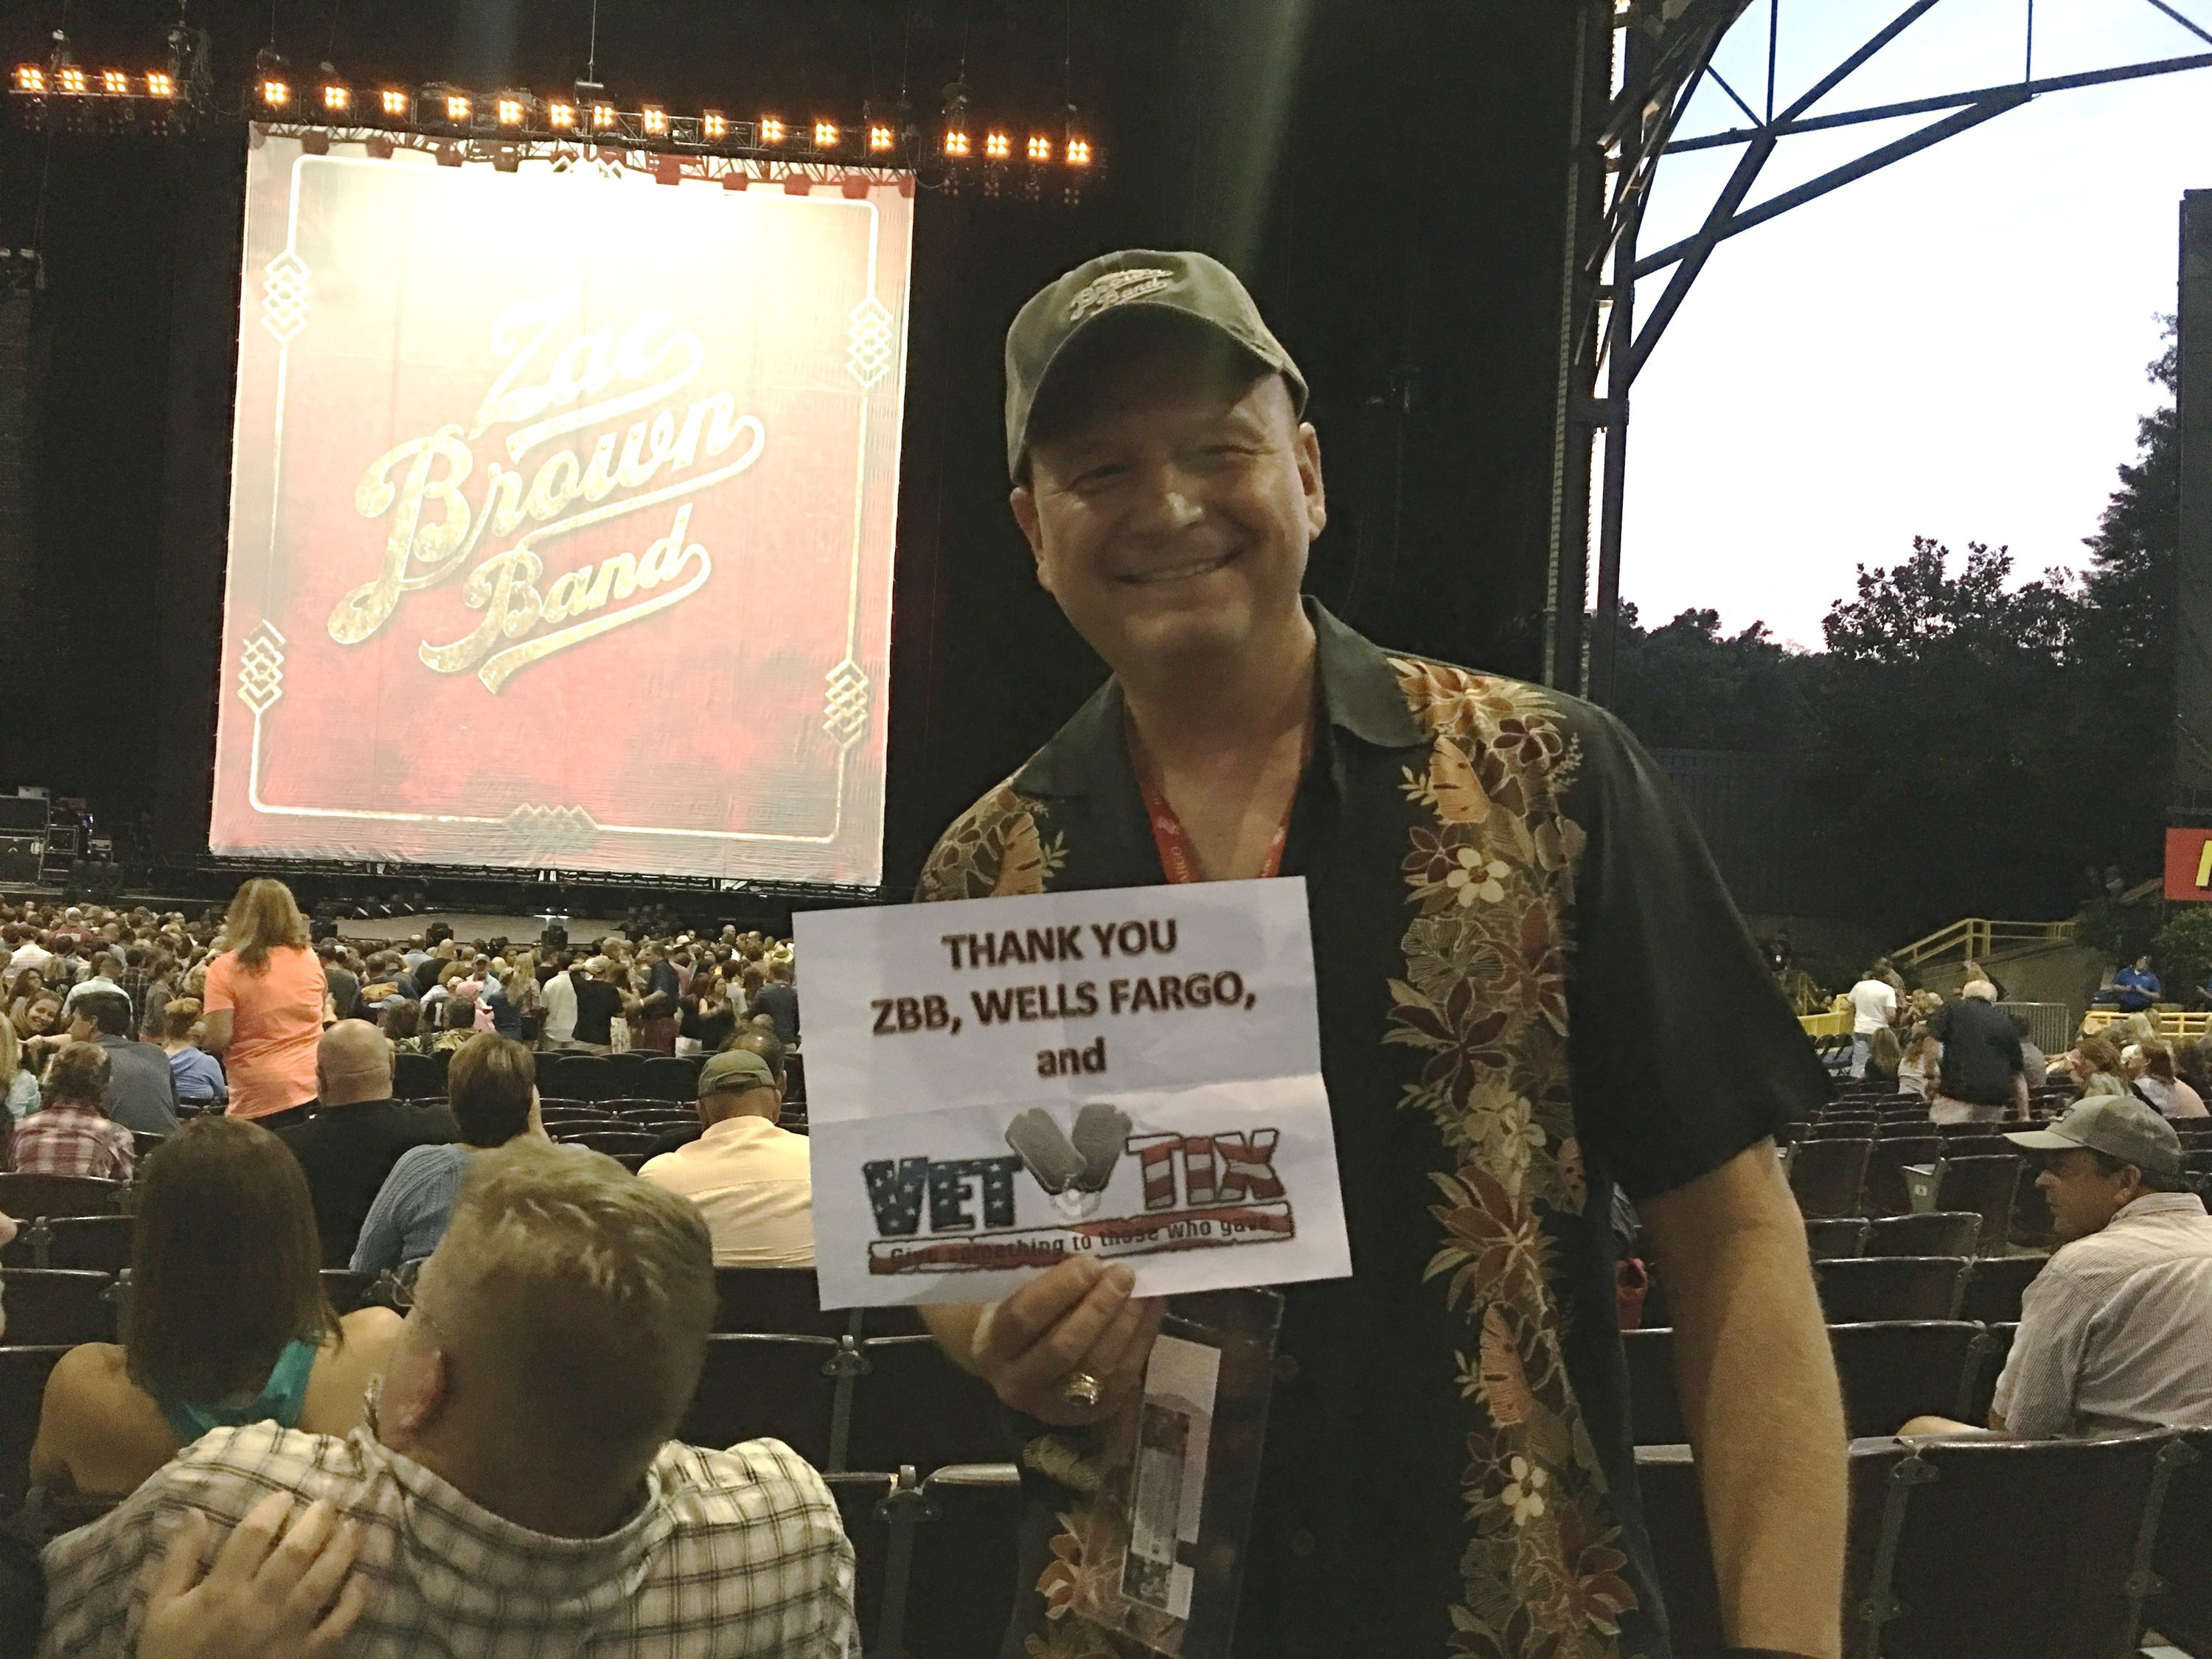 Thank you messages to veteran tickets foundation donors charles attended zac brown band black out the sun tour with meet and greet opportunity m4hsunfo